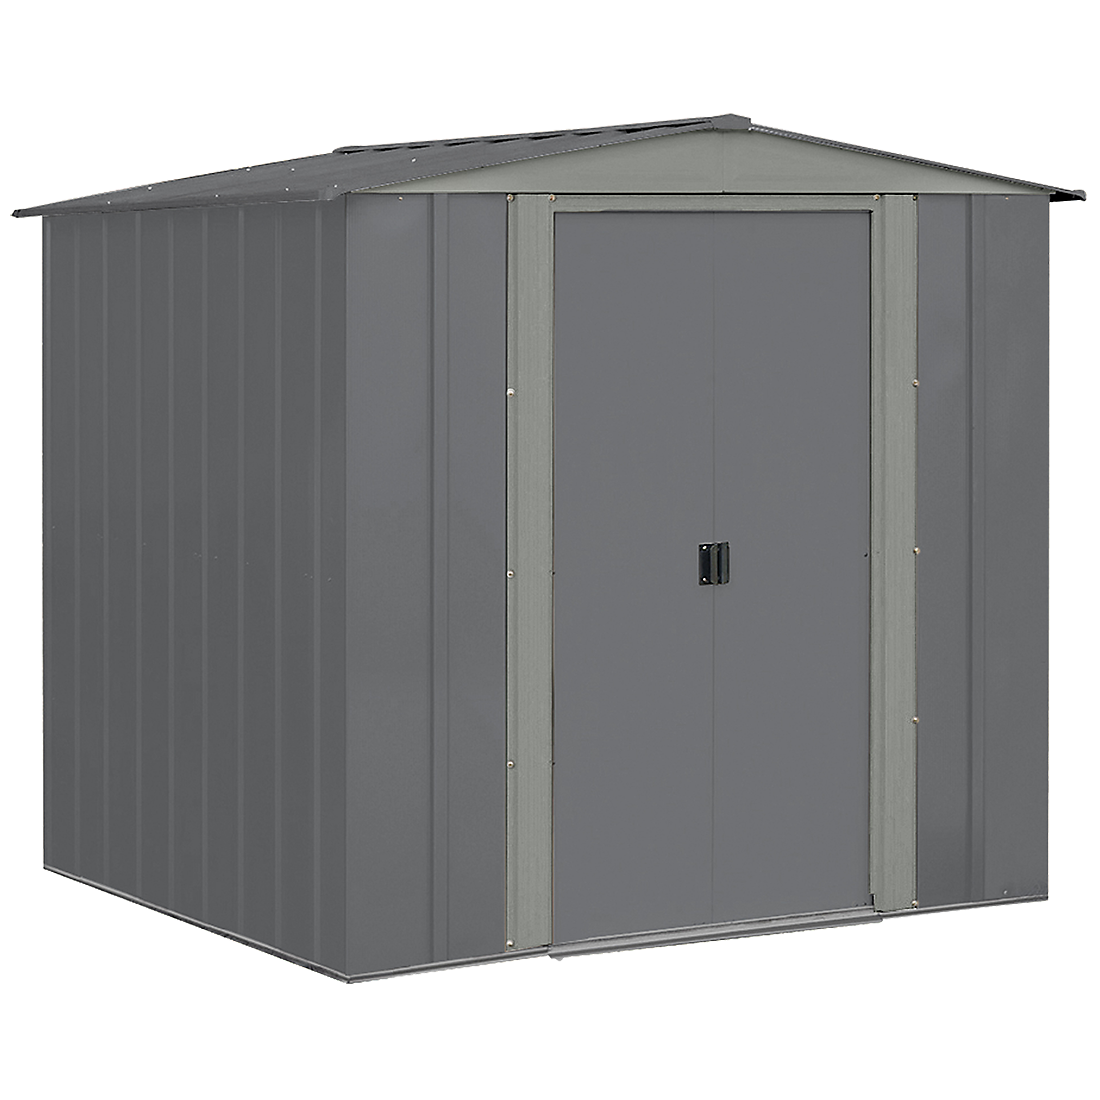 Arrow Shed 6 x 7 ft. in Grey